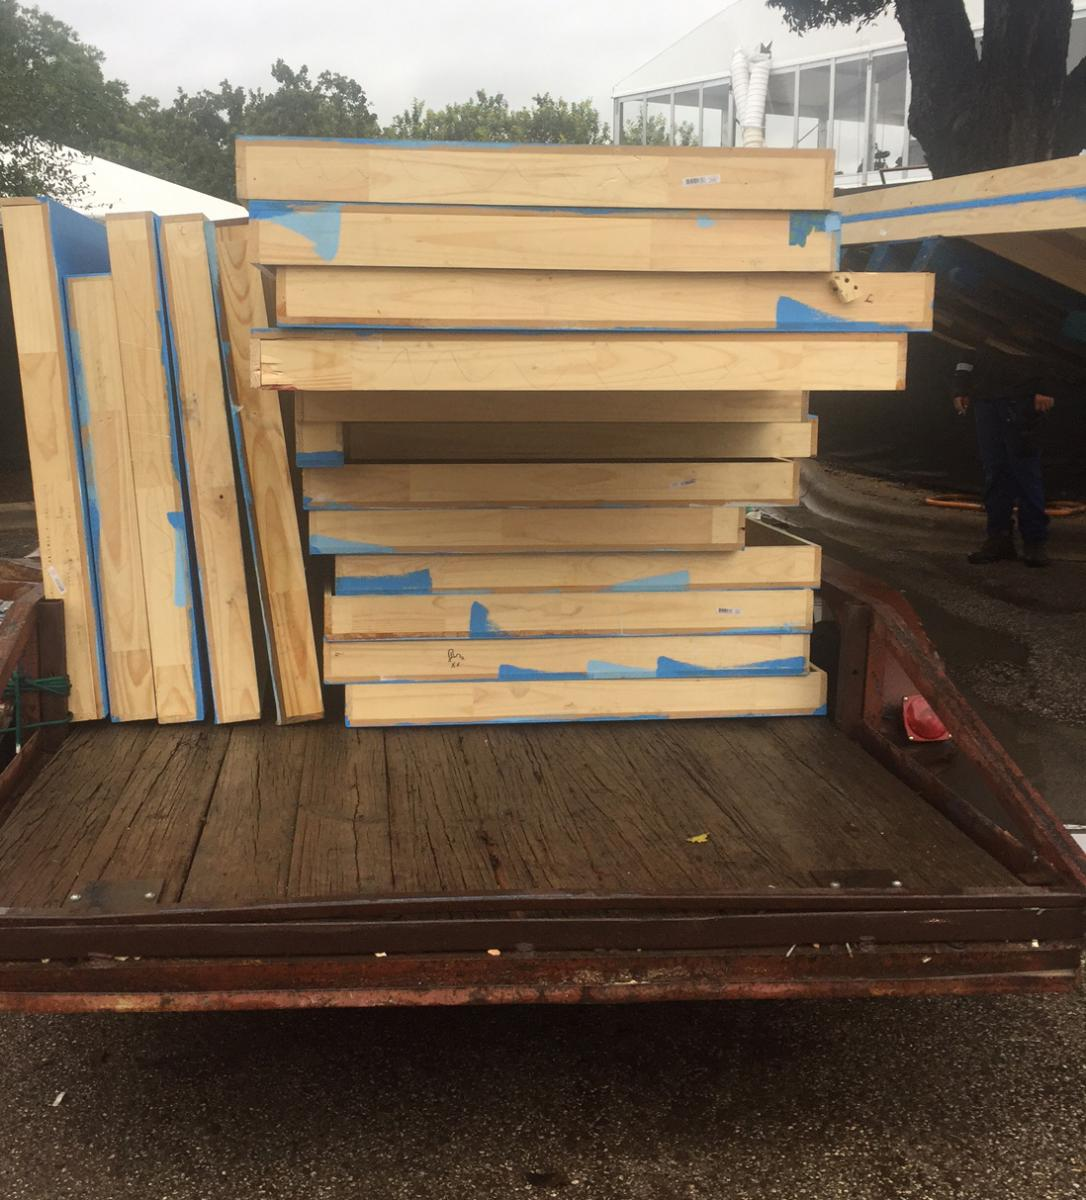 plywood from ACL stage structures being loaded up and sent to community partners for reuse.